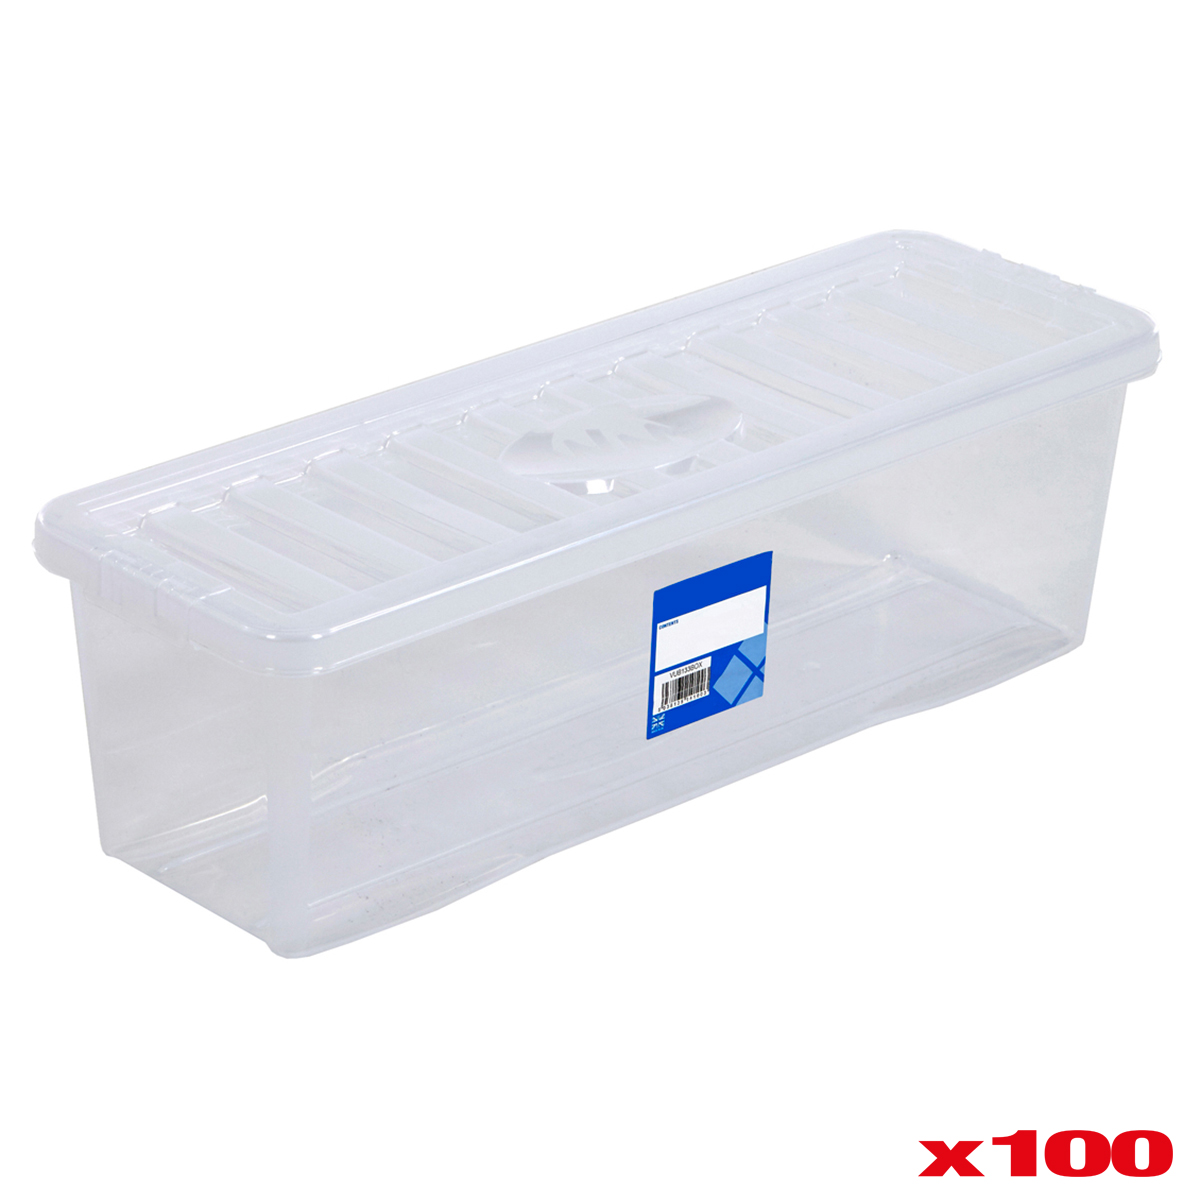 Cd Plastic Storage Box Clear Container With Lid Home